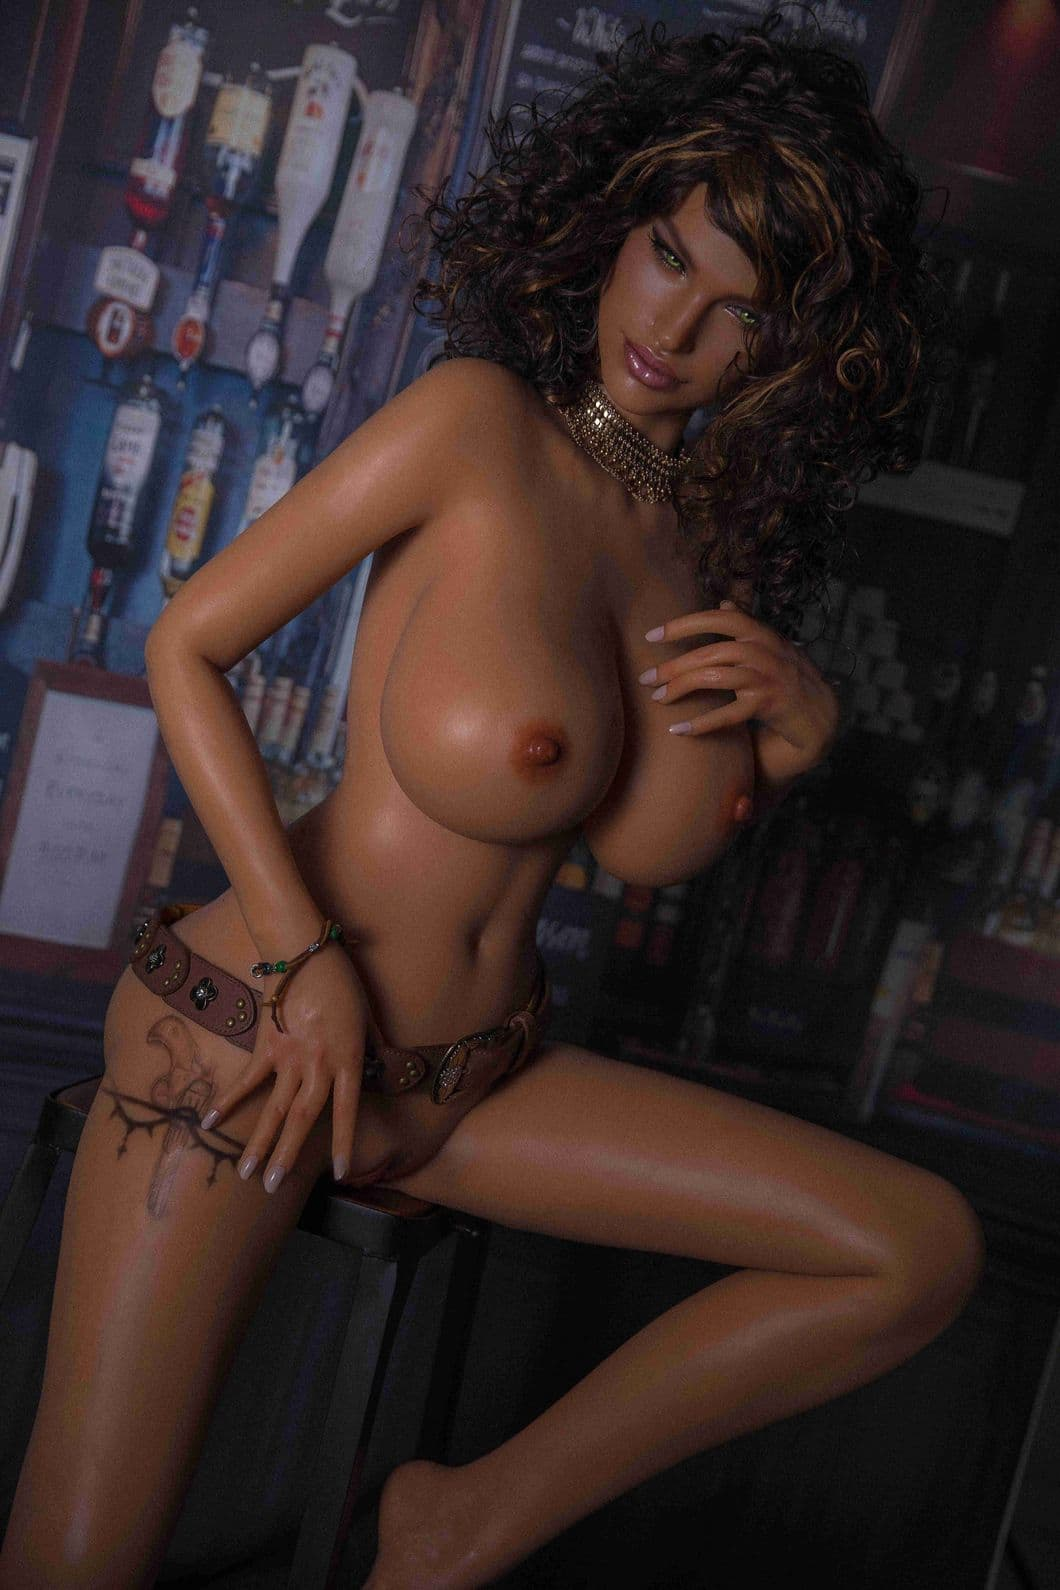 glenne 159cm 5ft3 brown hair big boobs athletic silicone tan skin sex doll(7)